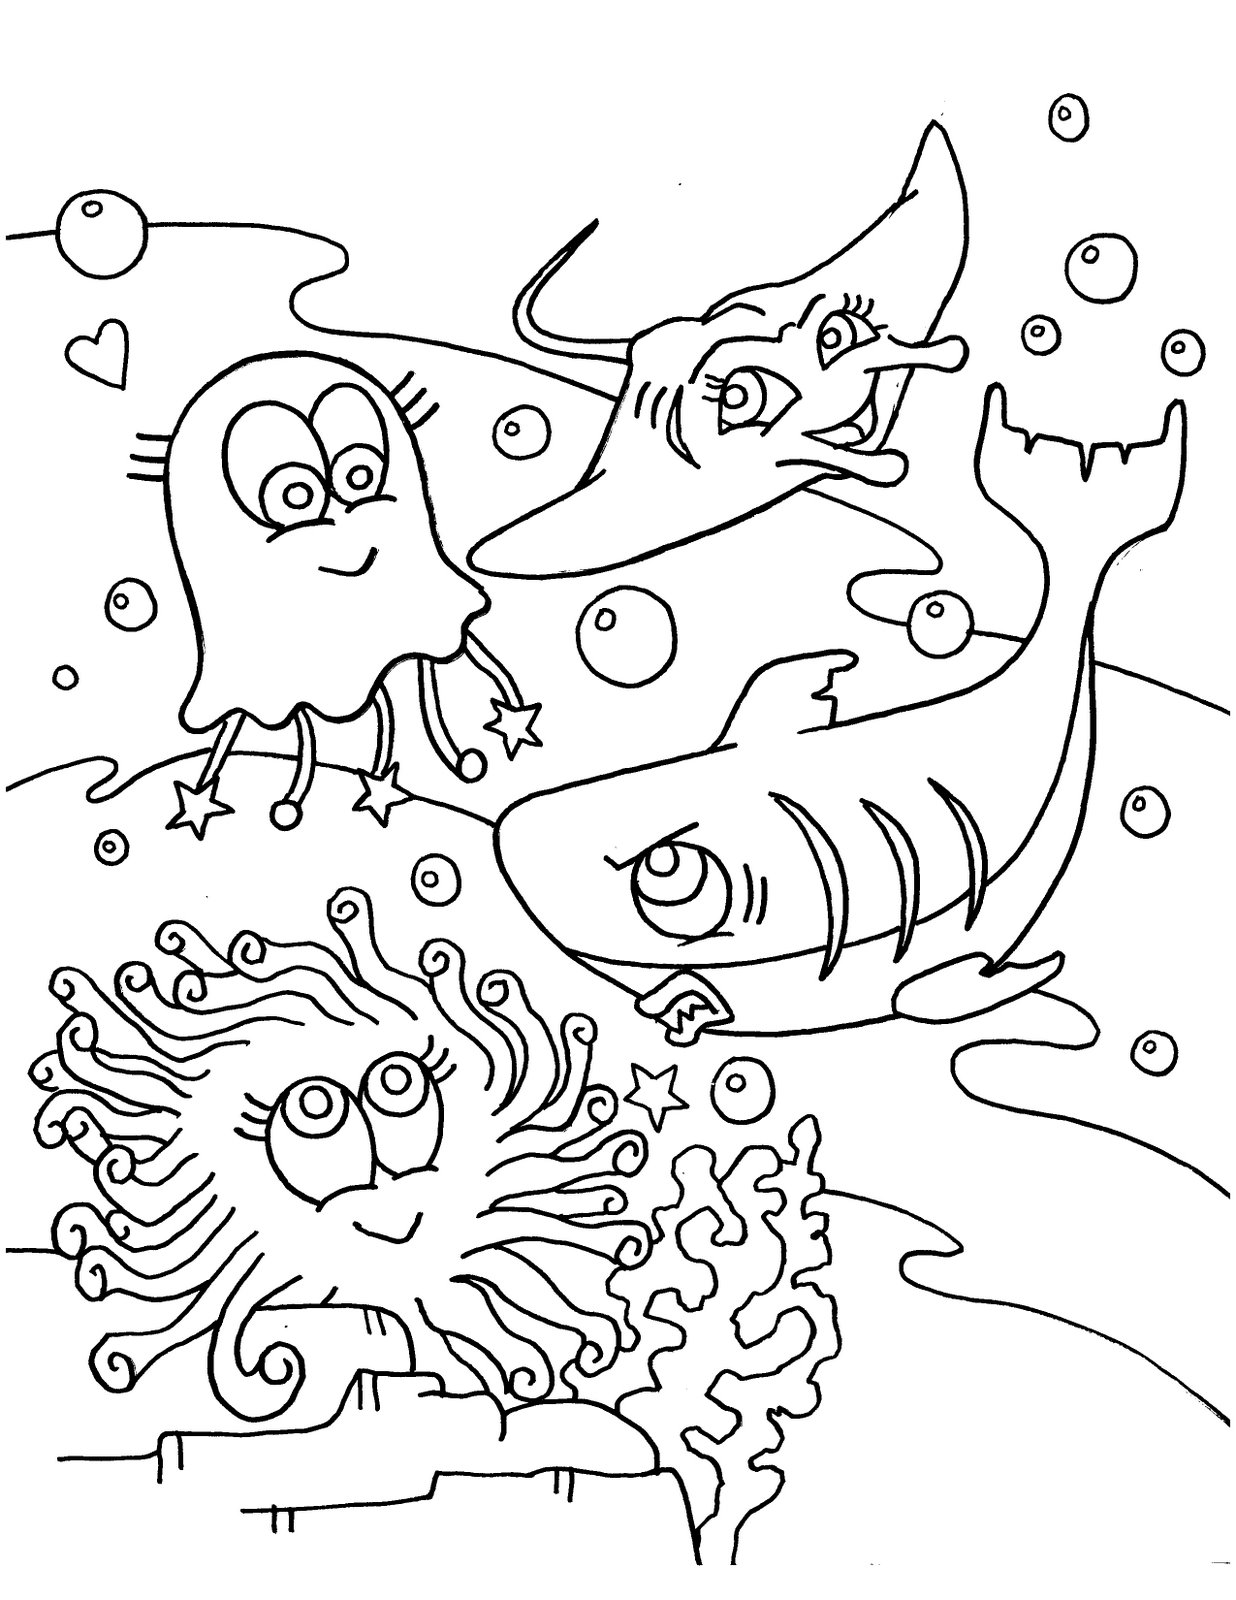 coloring pages of sea life 35 best free printable ocean coloring pages online life coloring sea pages of